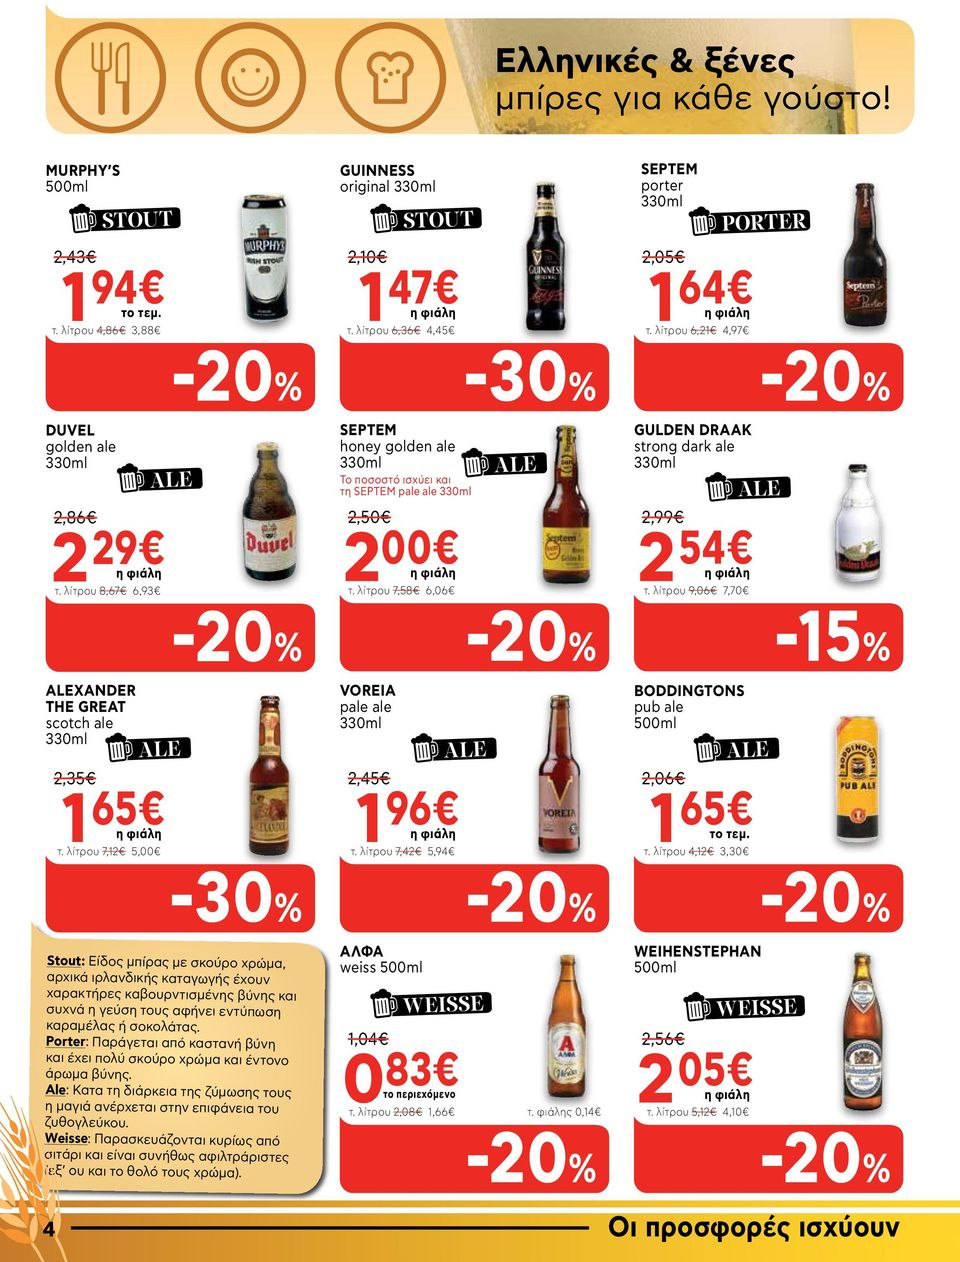 λίτρου 7,58 6,06 ALE GULDEN DRAAK strong dark ale 2,99 2 54 τ. λίτρου 9,06 7,70 ALE -15% ALEXANDER THE GREAT scotch ale ALE 2,35 1 65 τ. λίτρου 7,12 5,00 VOREIA pale ale 2,45 1 96 τ.